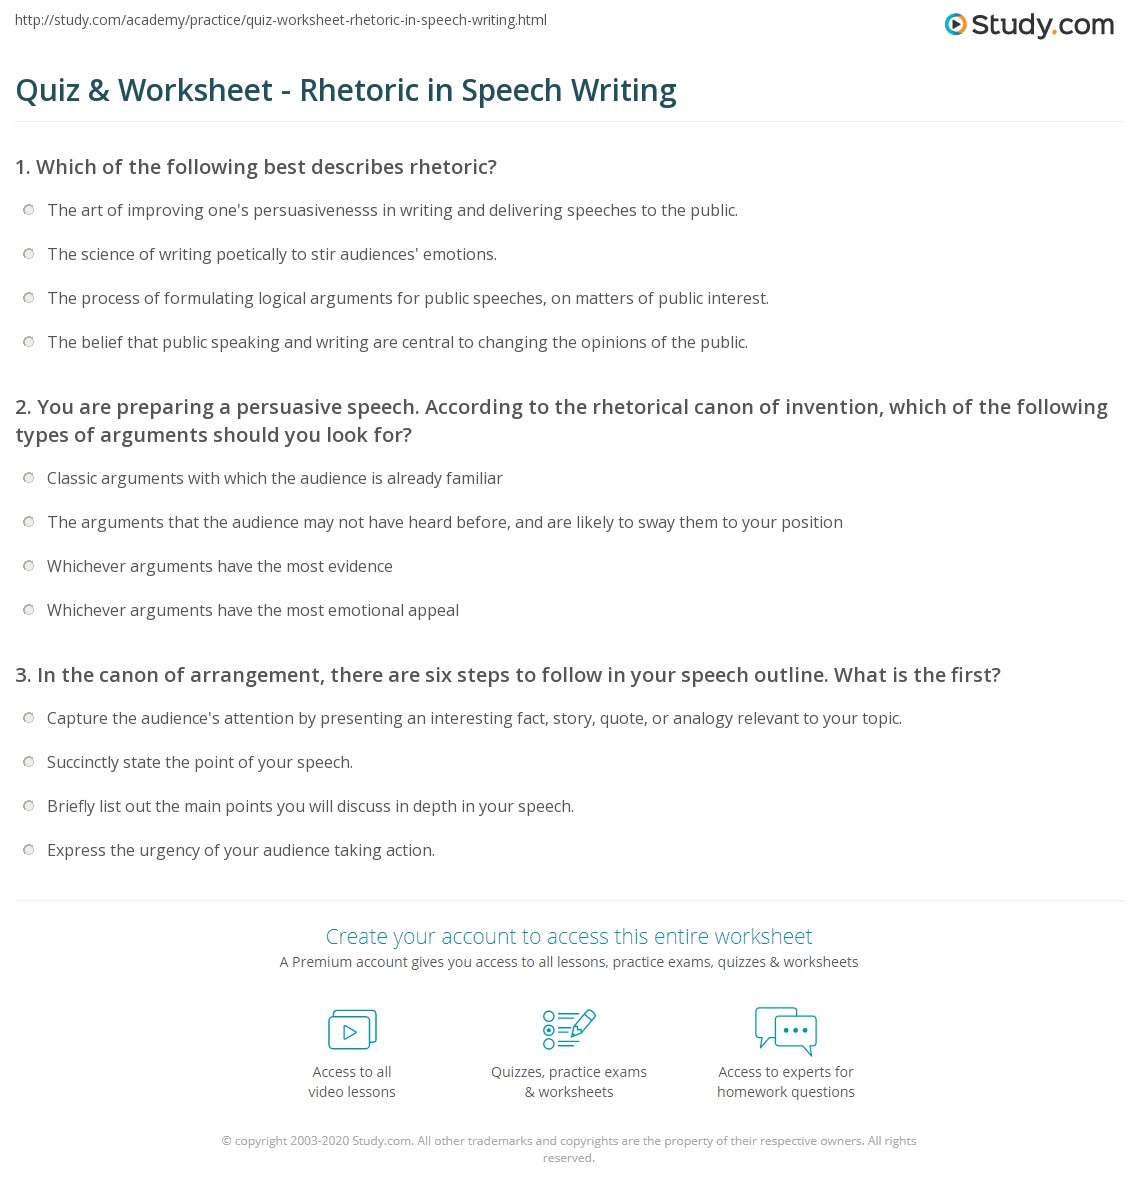 different steps in the research process/thesis writing